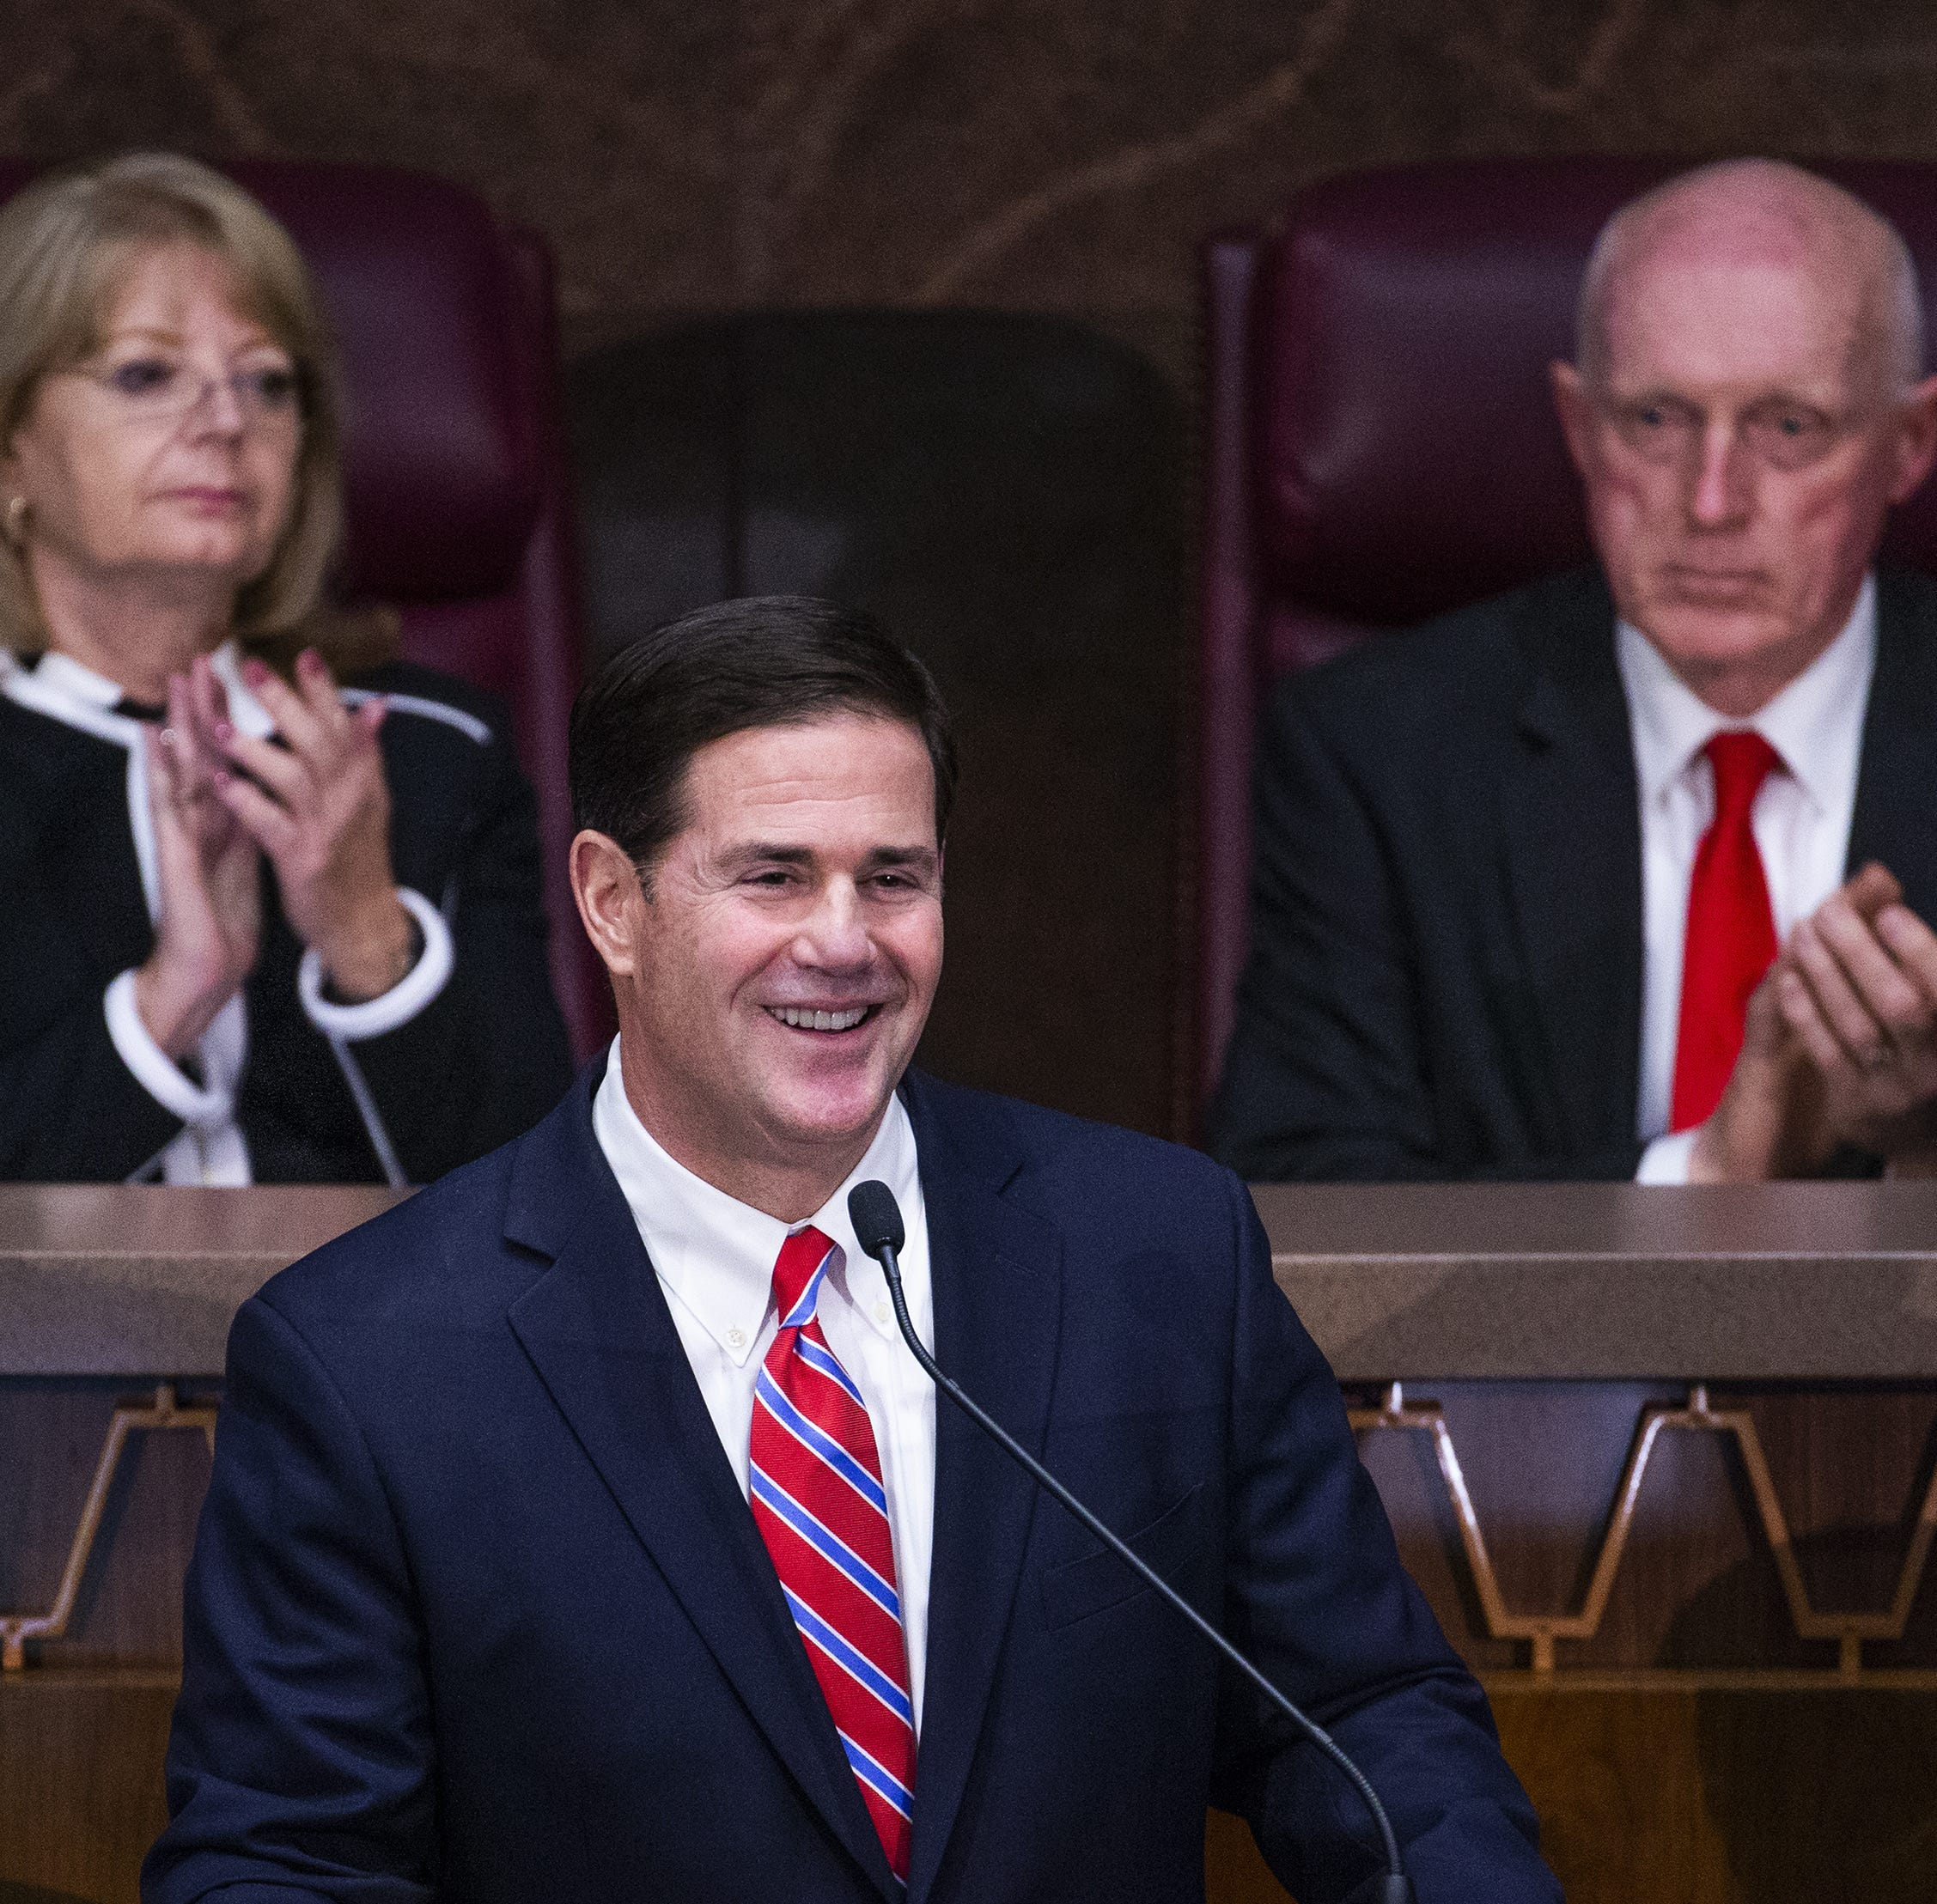 Arizona budget details released, but lack of GOP support in Senate could doom deal